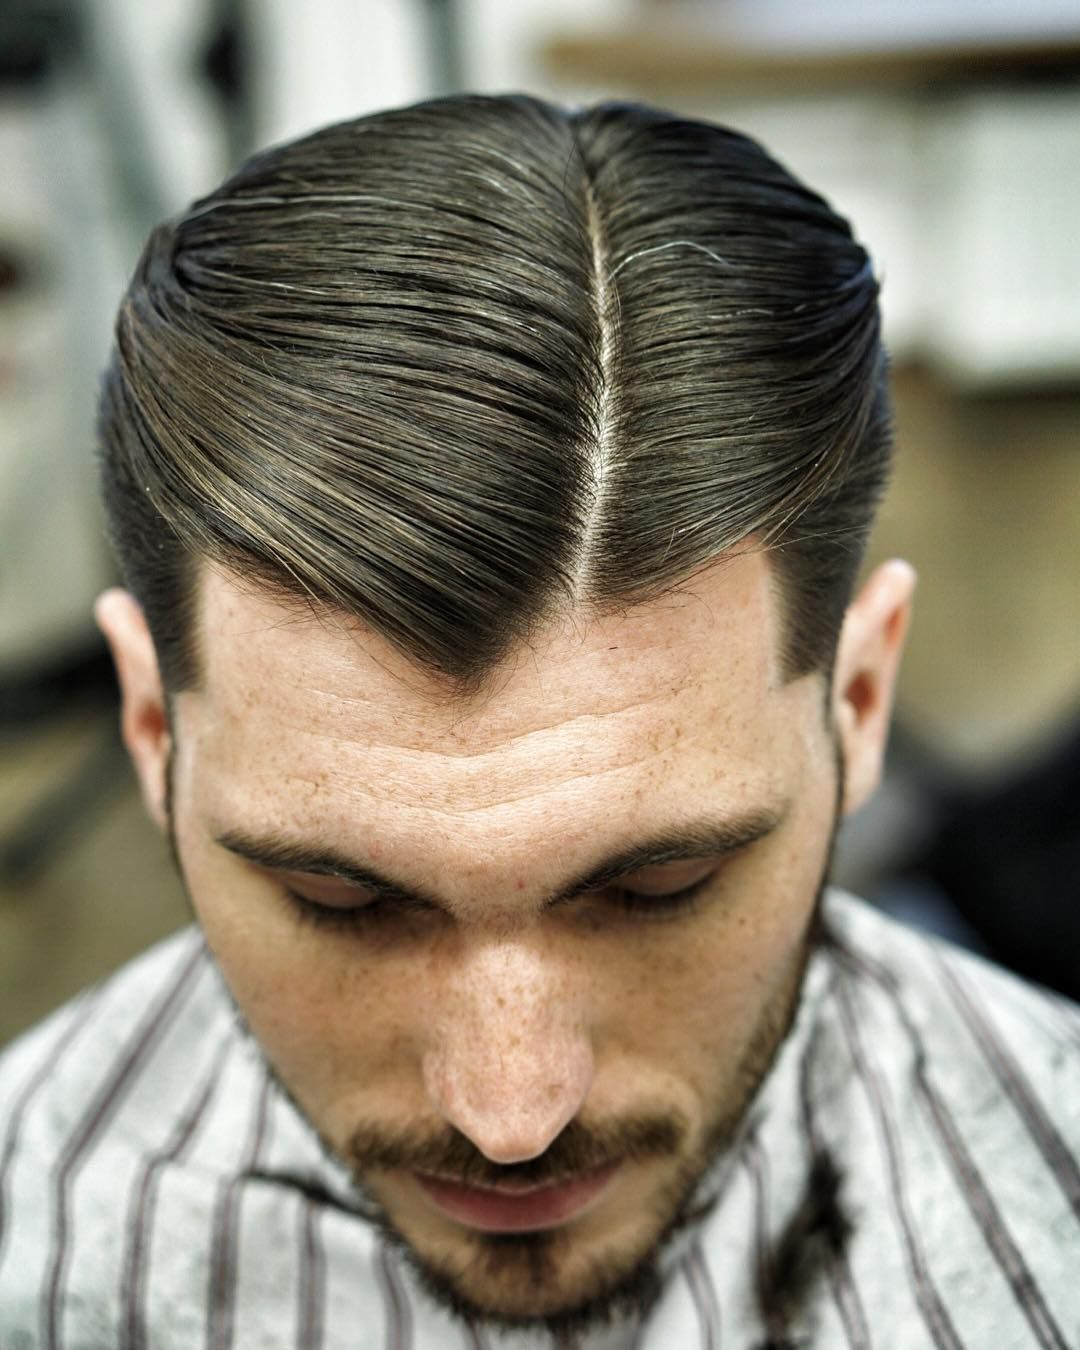 Suavecito Firme Clay Vintage Hairstyles For Men Slick Hairstyles Mens Hairstyles